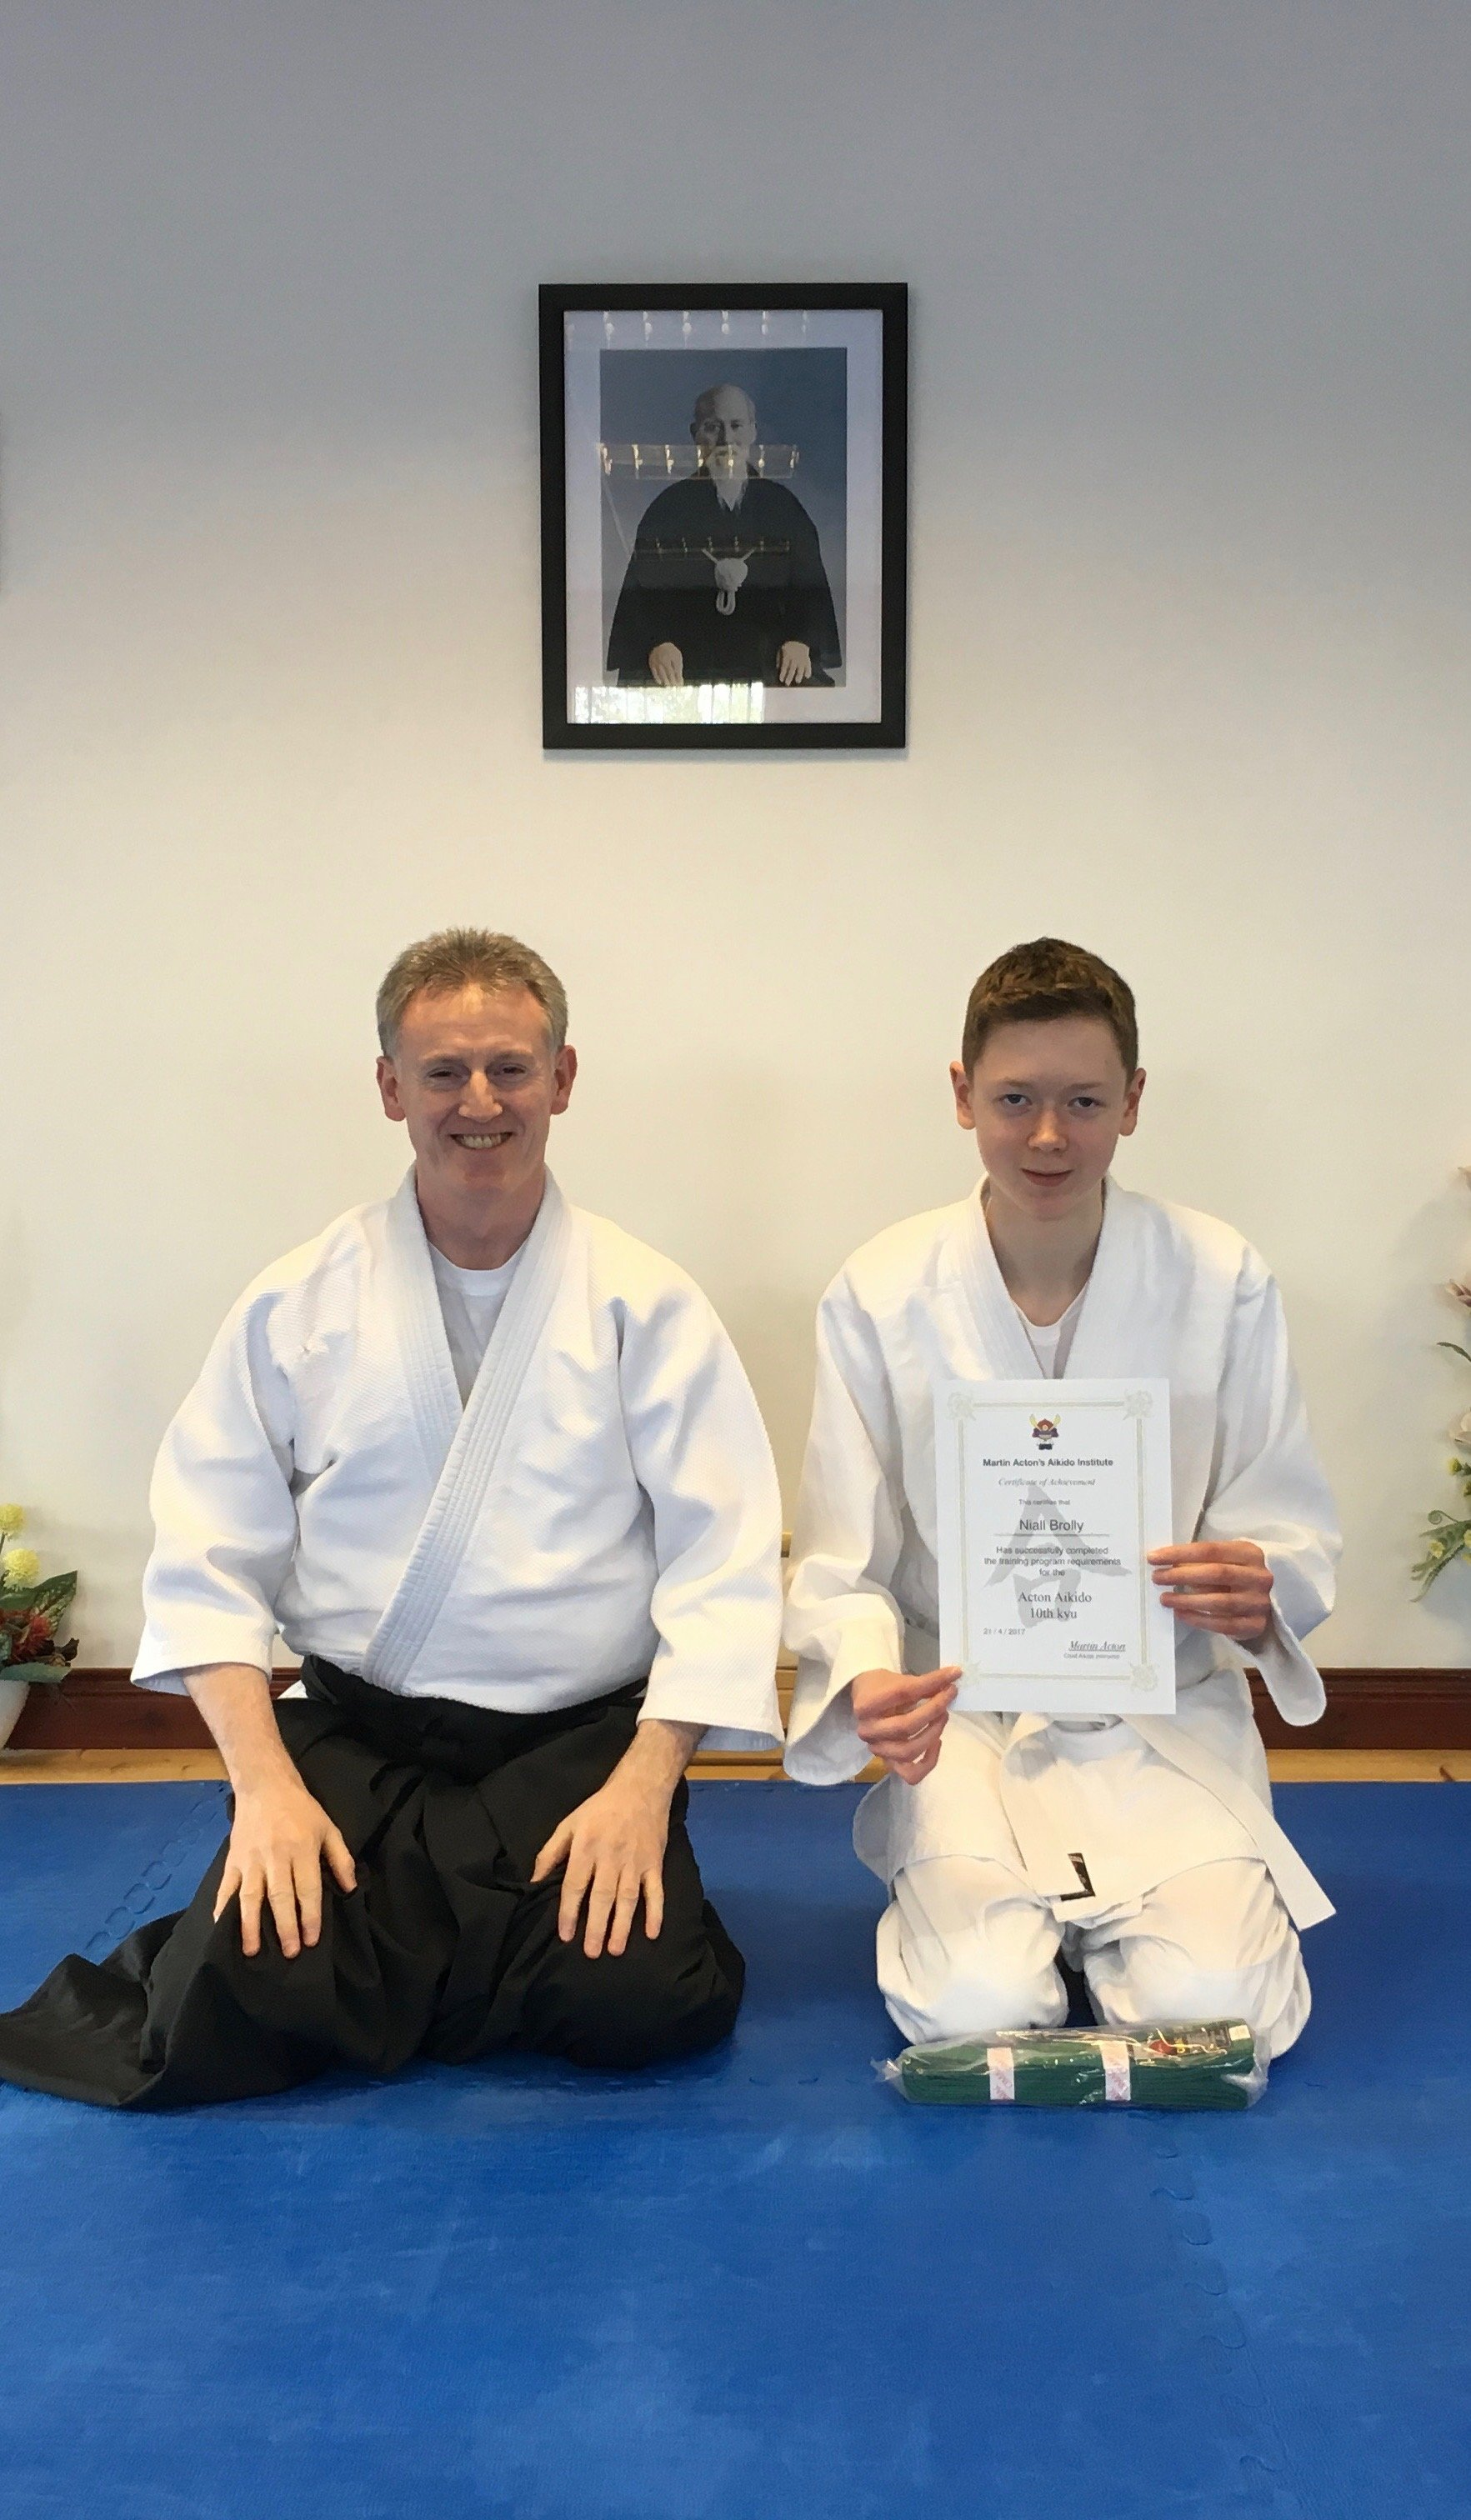 Niall Brolly receiving his Aikido 11th kyung grading with Martin Acton sensei on the 21/4/17 at Martin Acton's Aikido Institute.